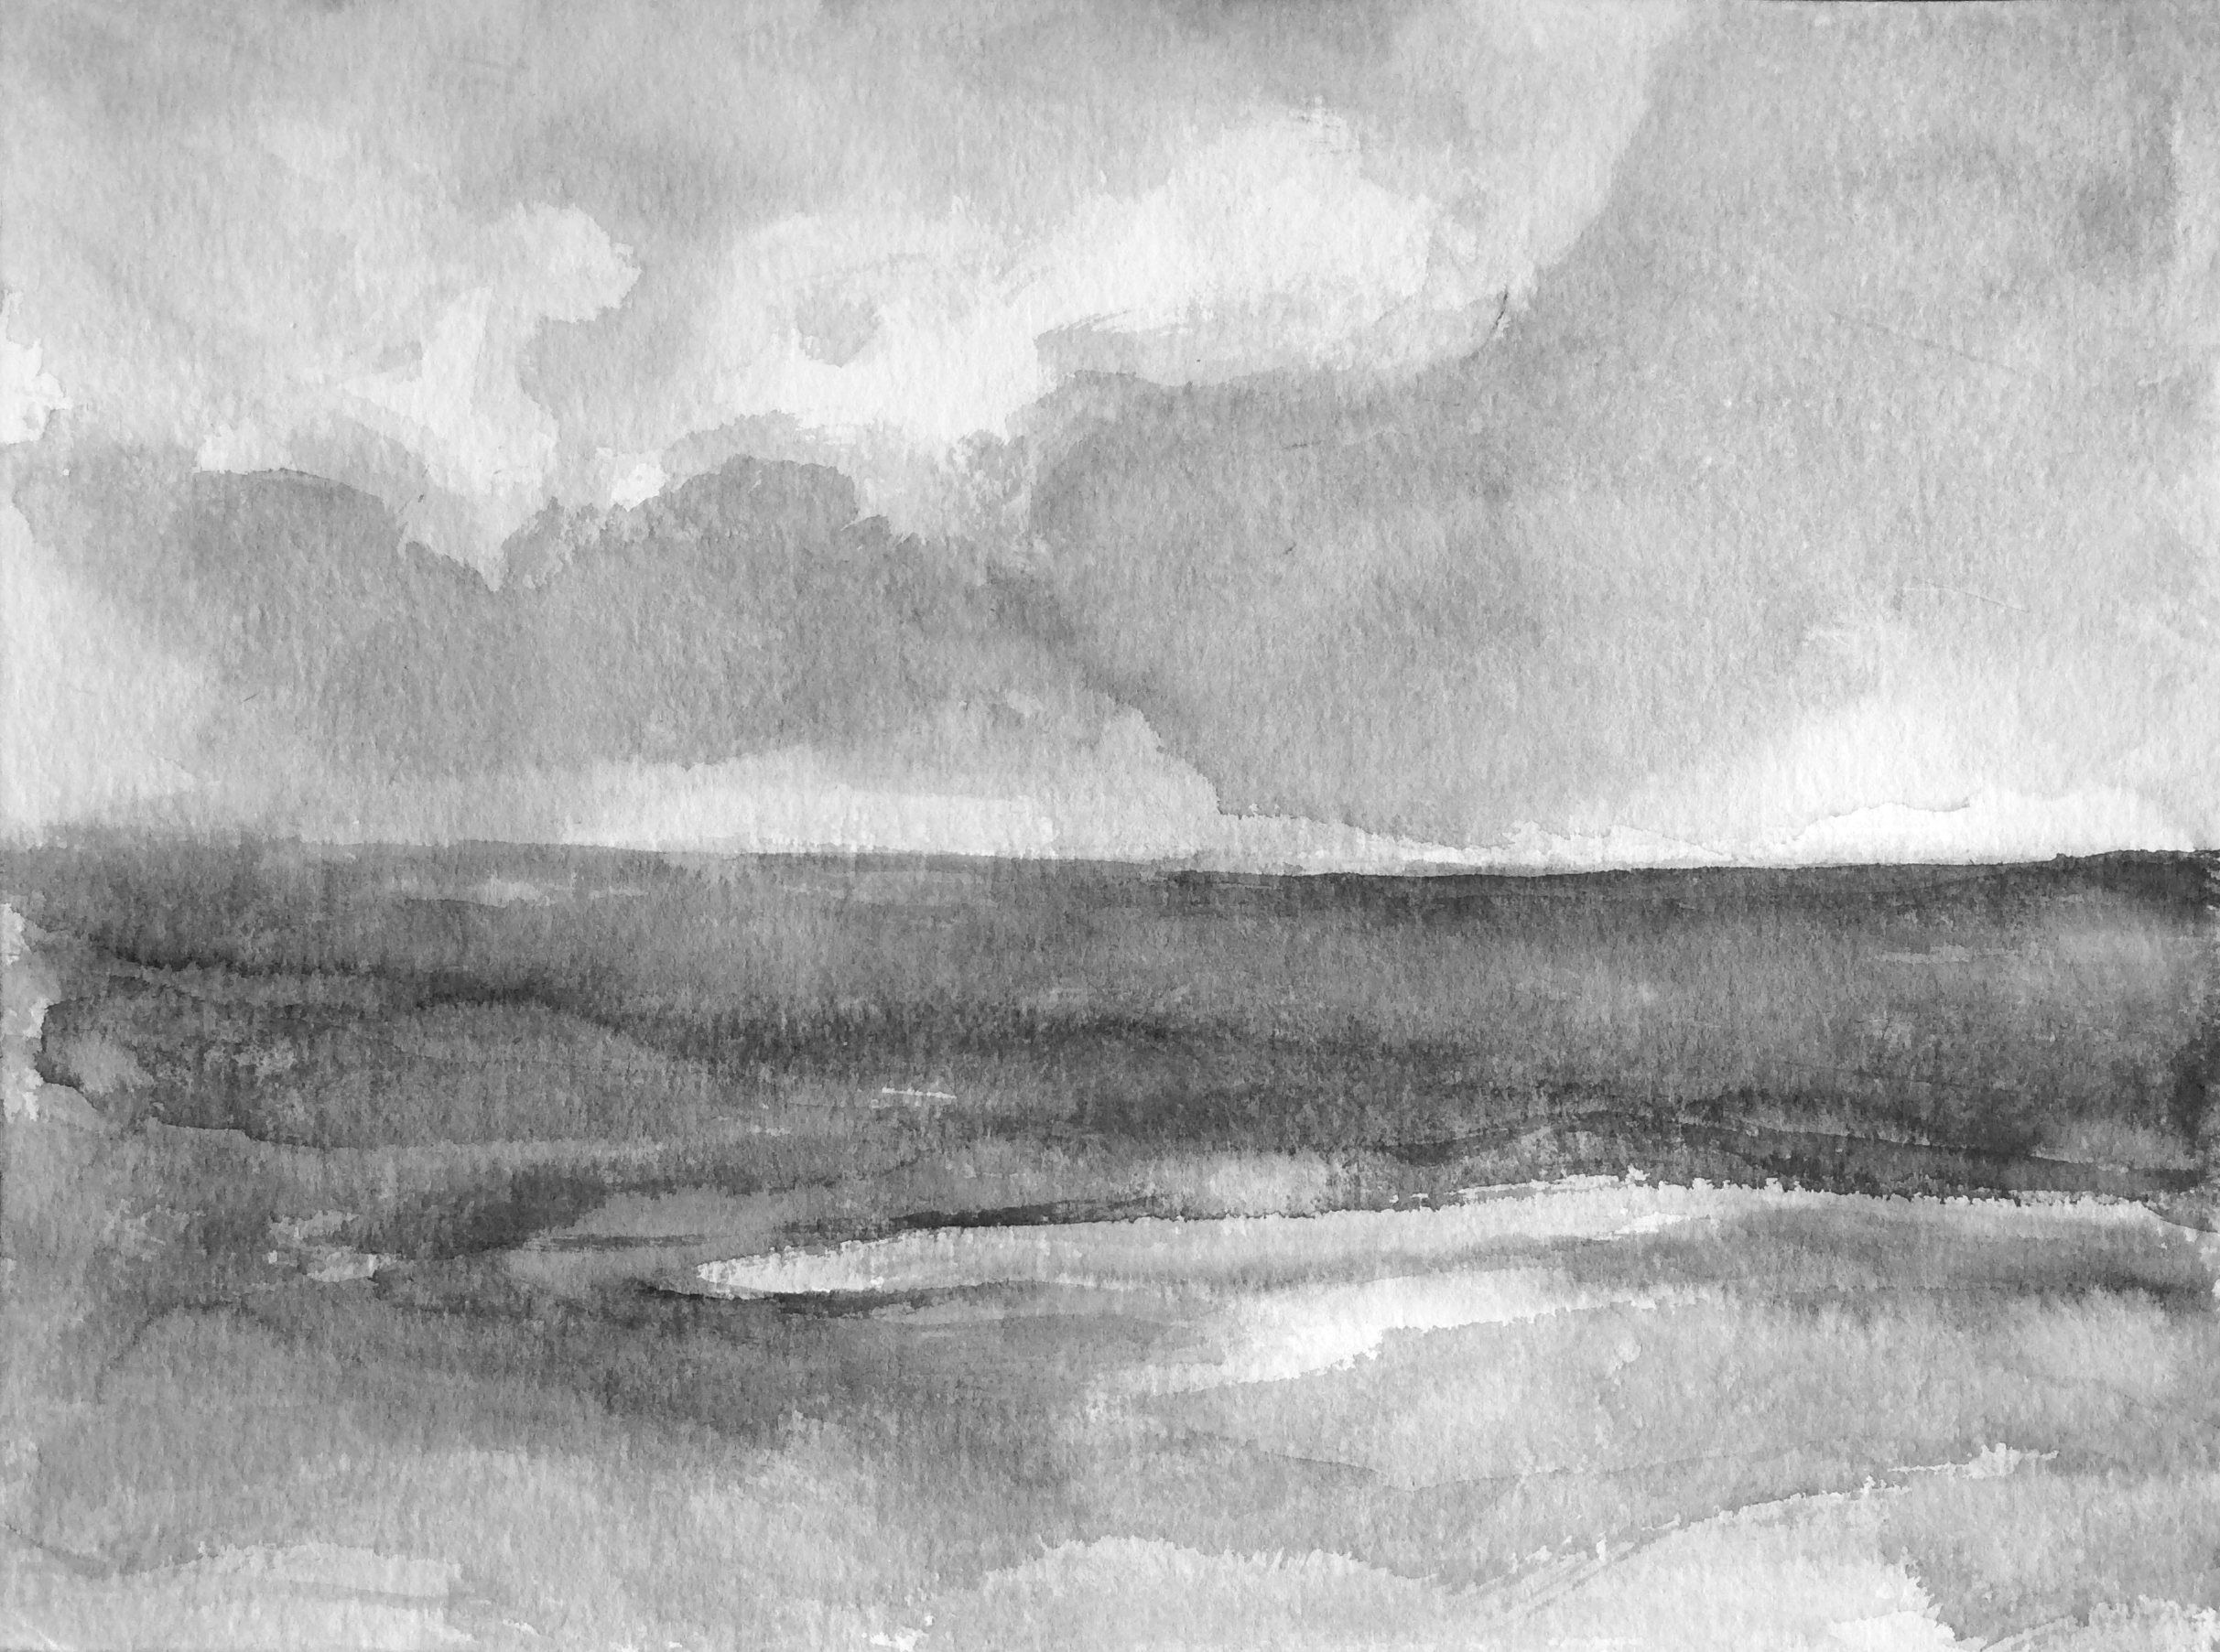 The sea and clouds, 30x40cm, ink, paper, 2020